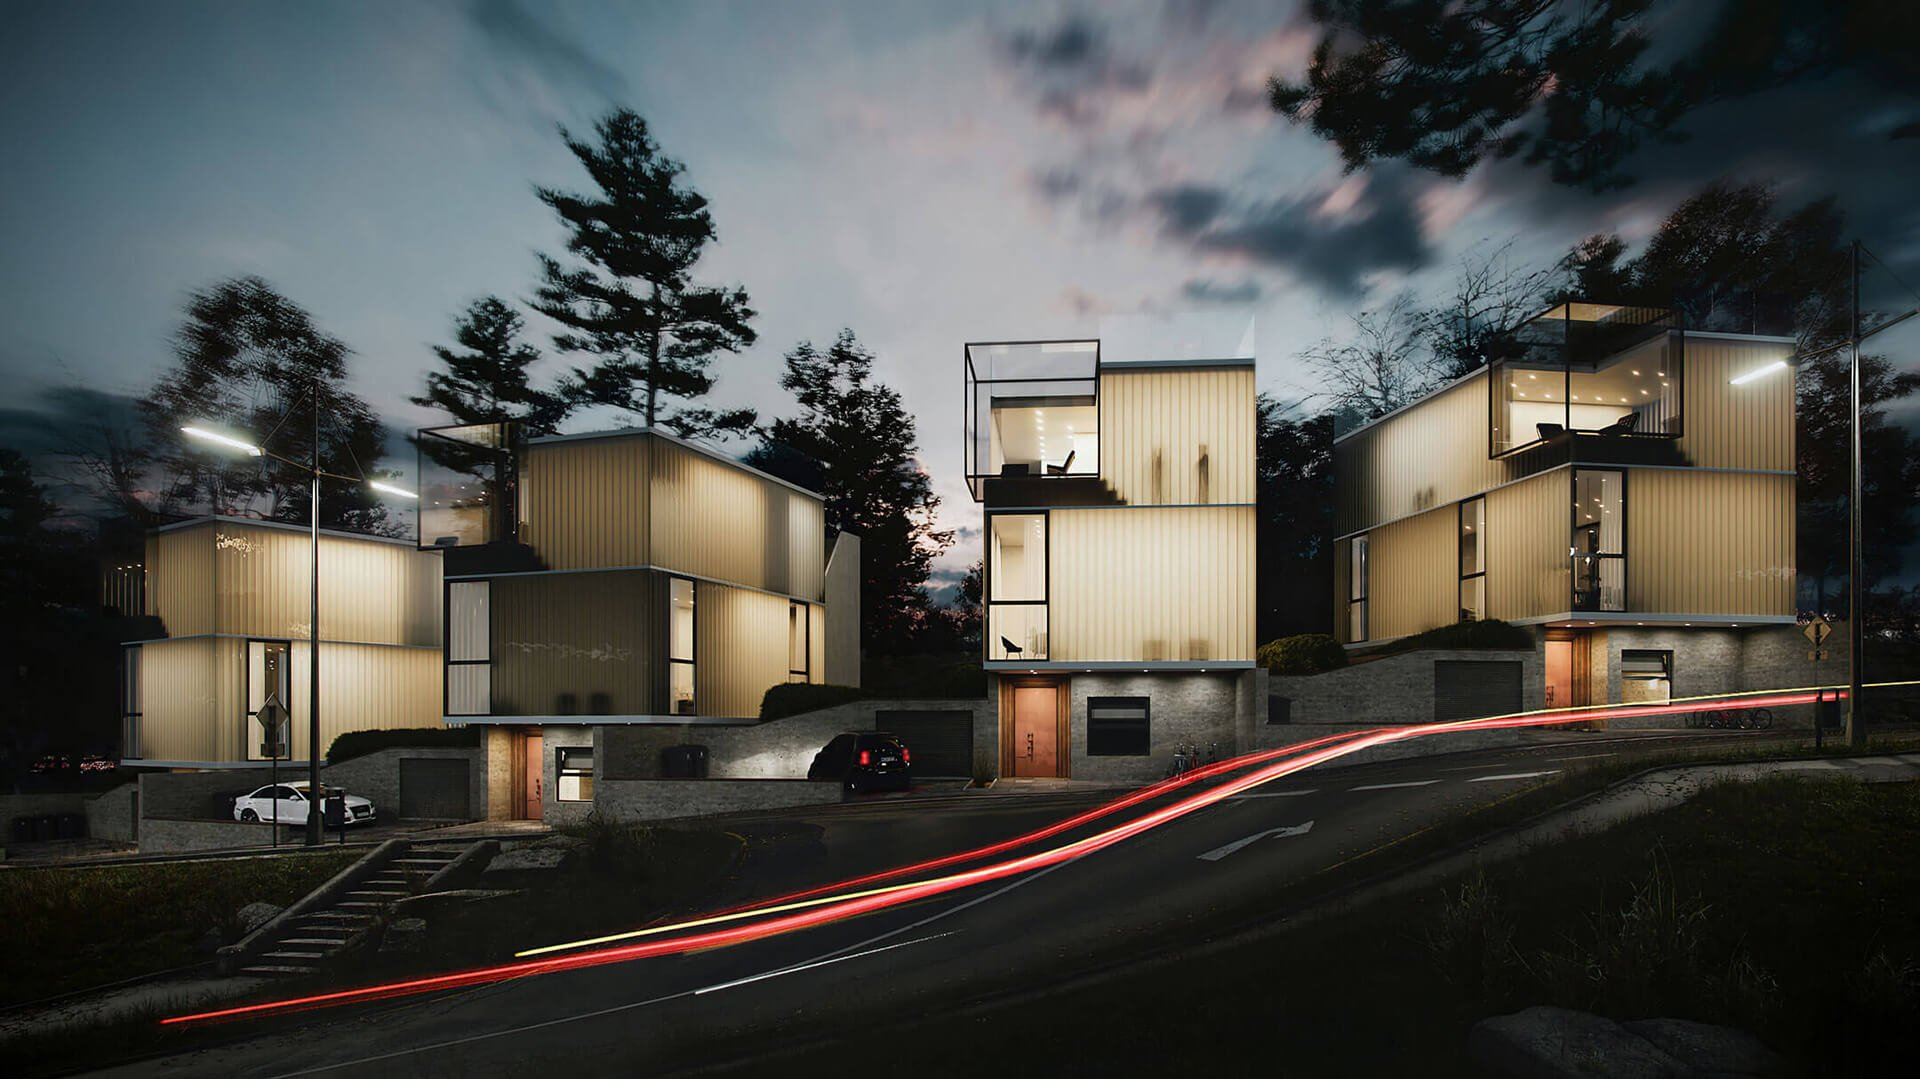 3D Exterior Visualization Of A Neighbourhood At Night